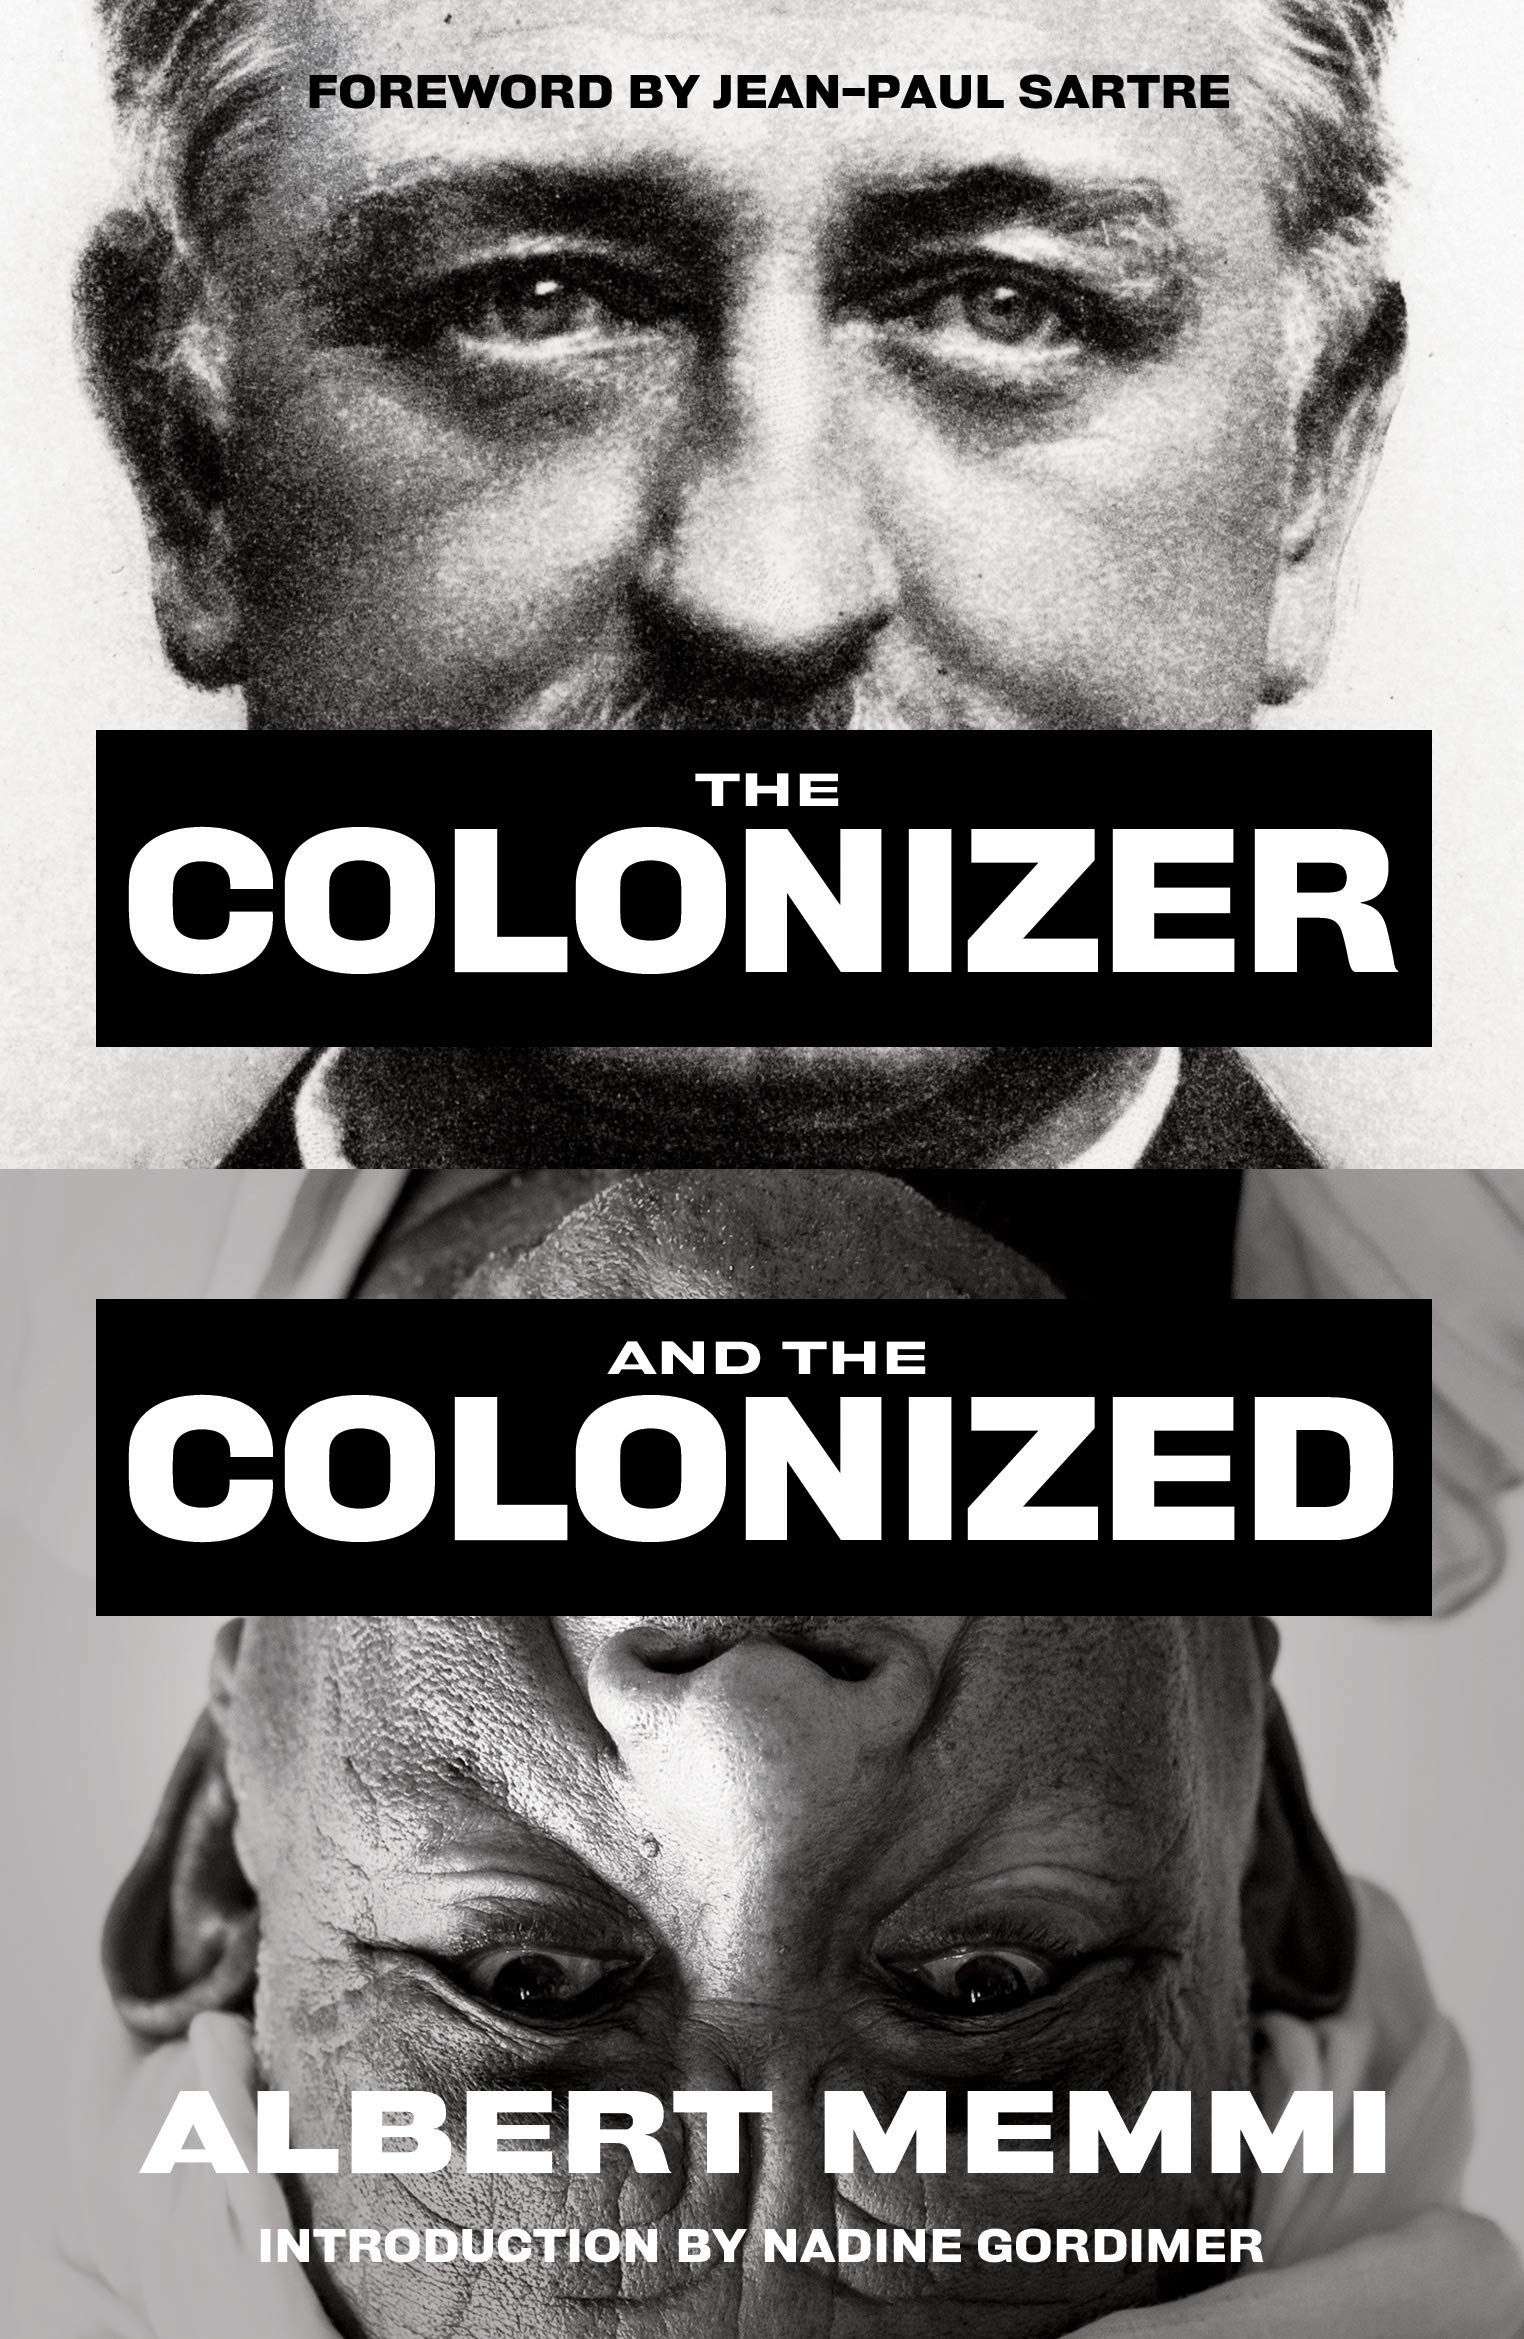 Albert Memmi: The Colonizer and the Colonized